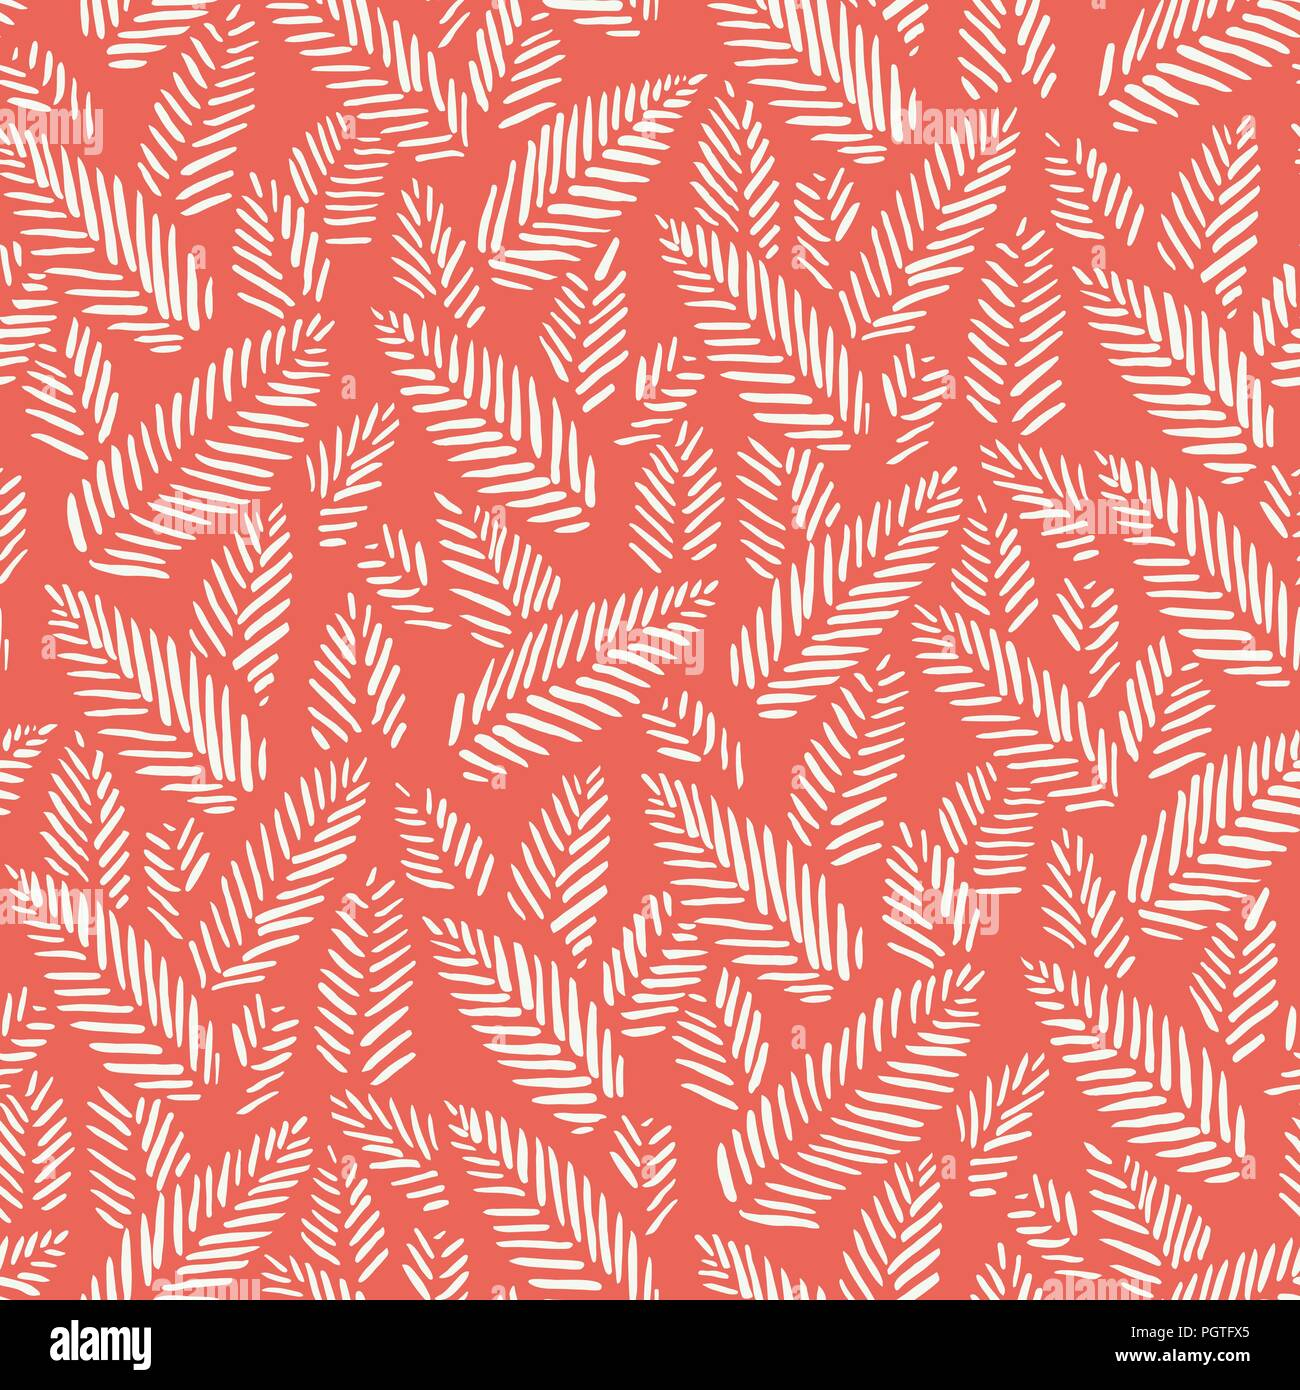 White hand drawn abstract herringbone leaves on red